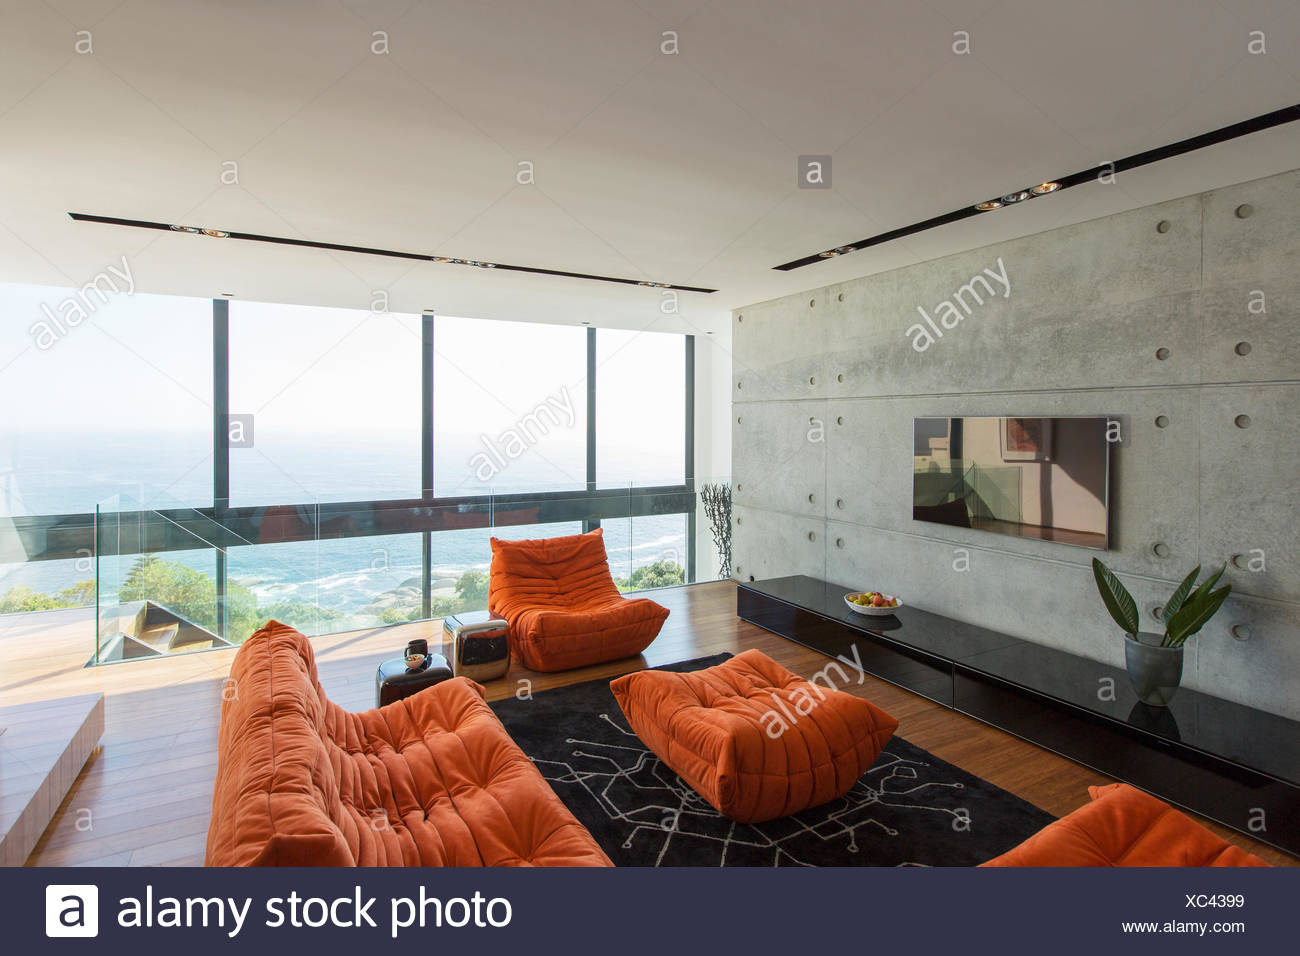 Sofas and ottoman in modern living room - Stock Image